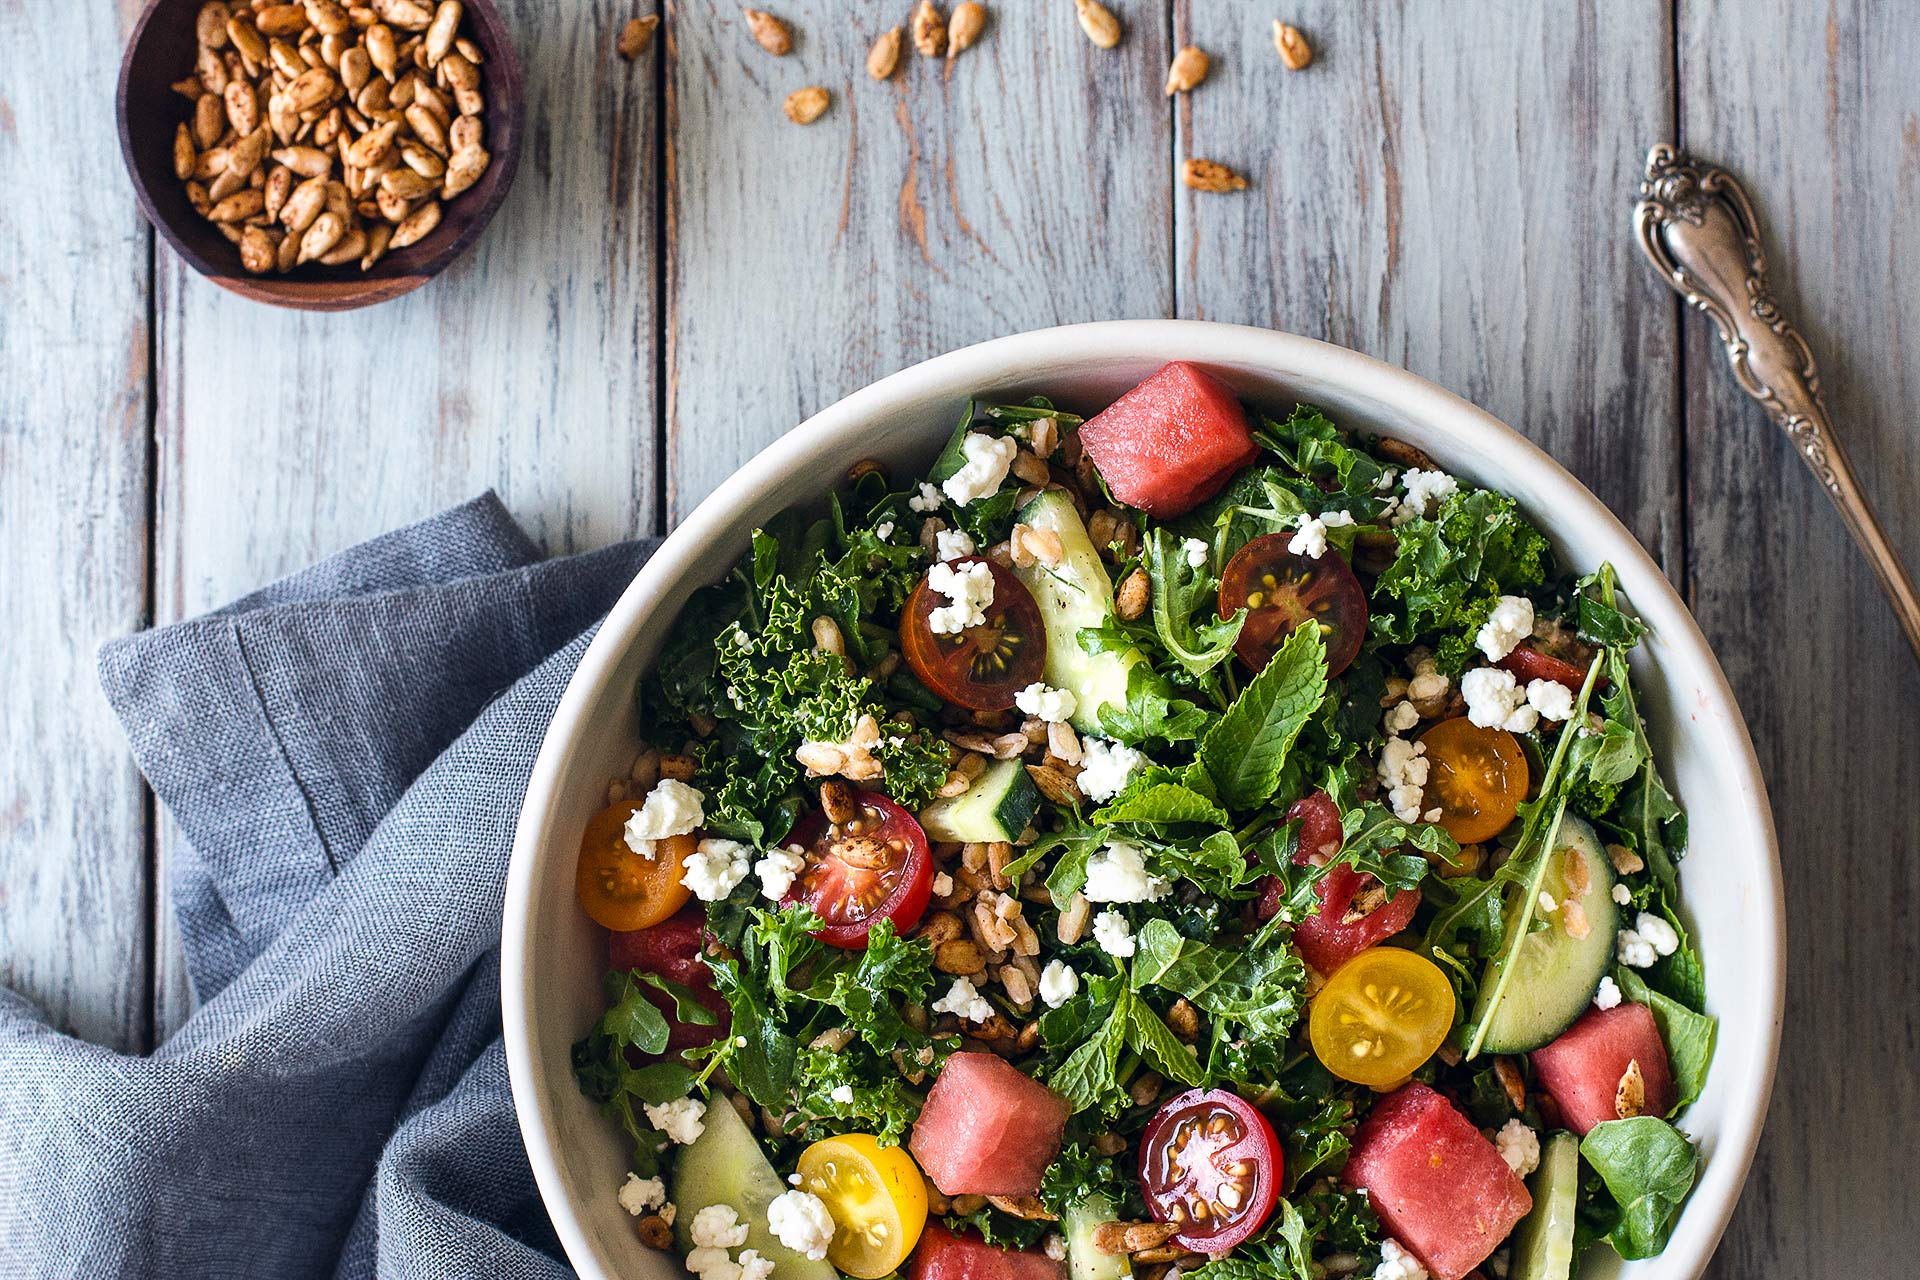 Early summer salad with kale, arugula, watermelon and farro | HonestlyYUM (honestlyyum.com)